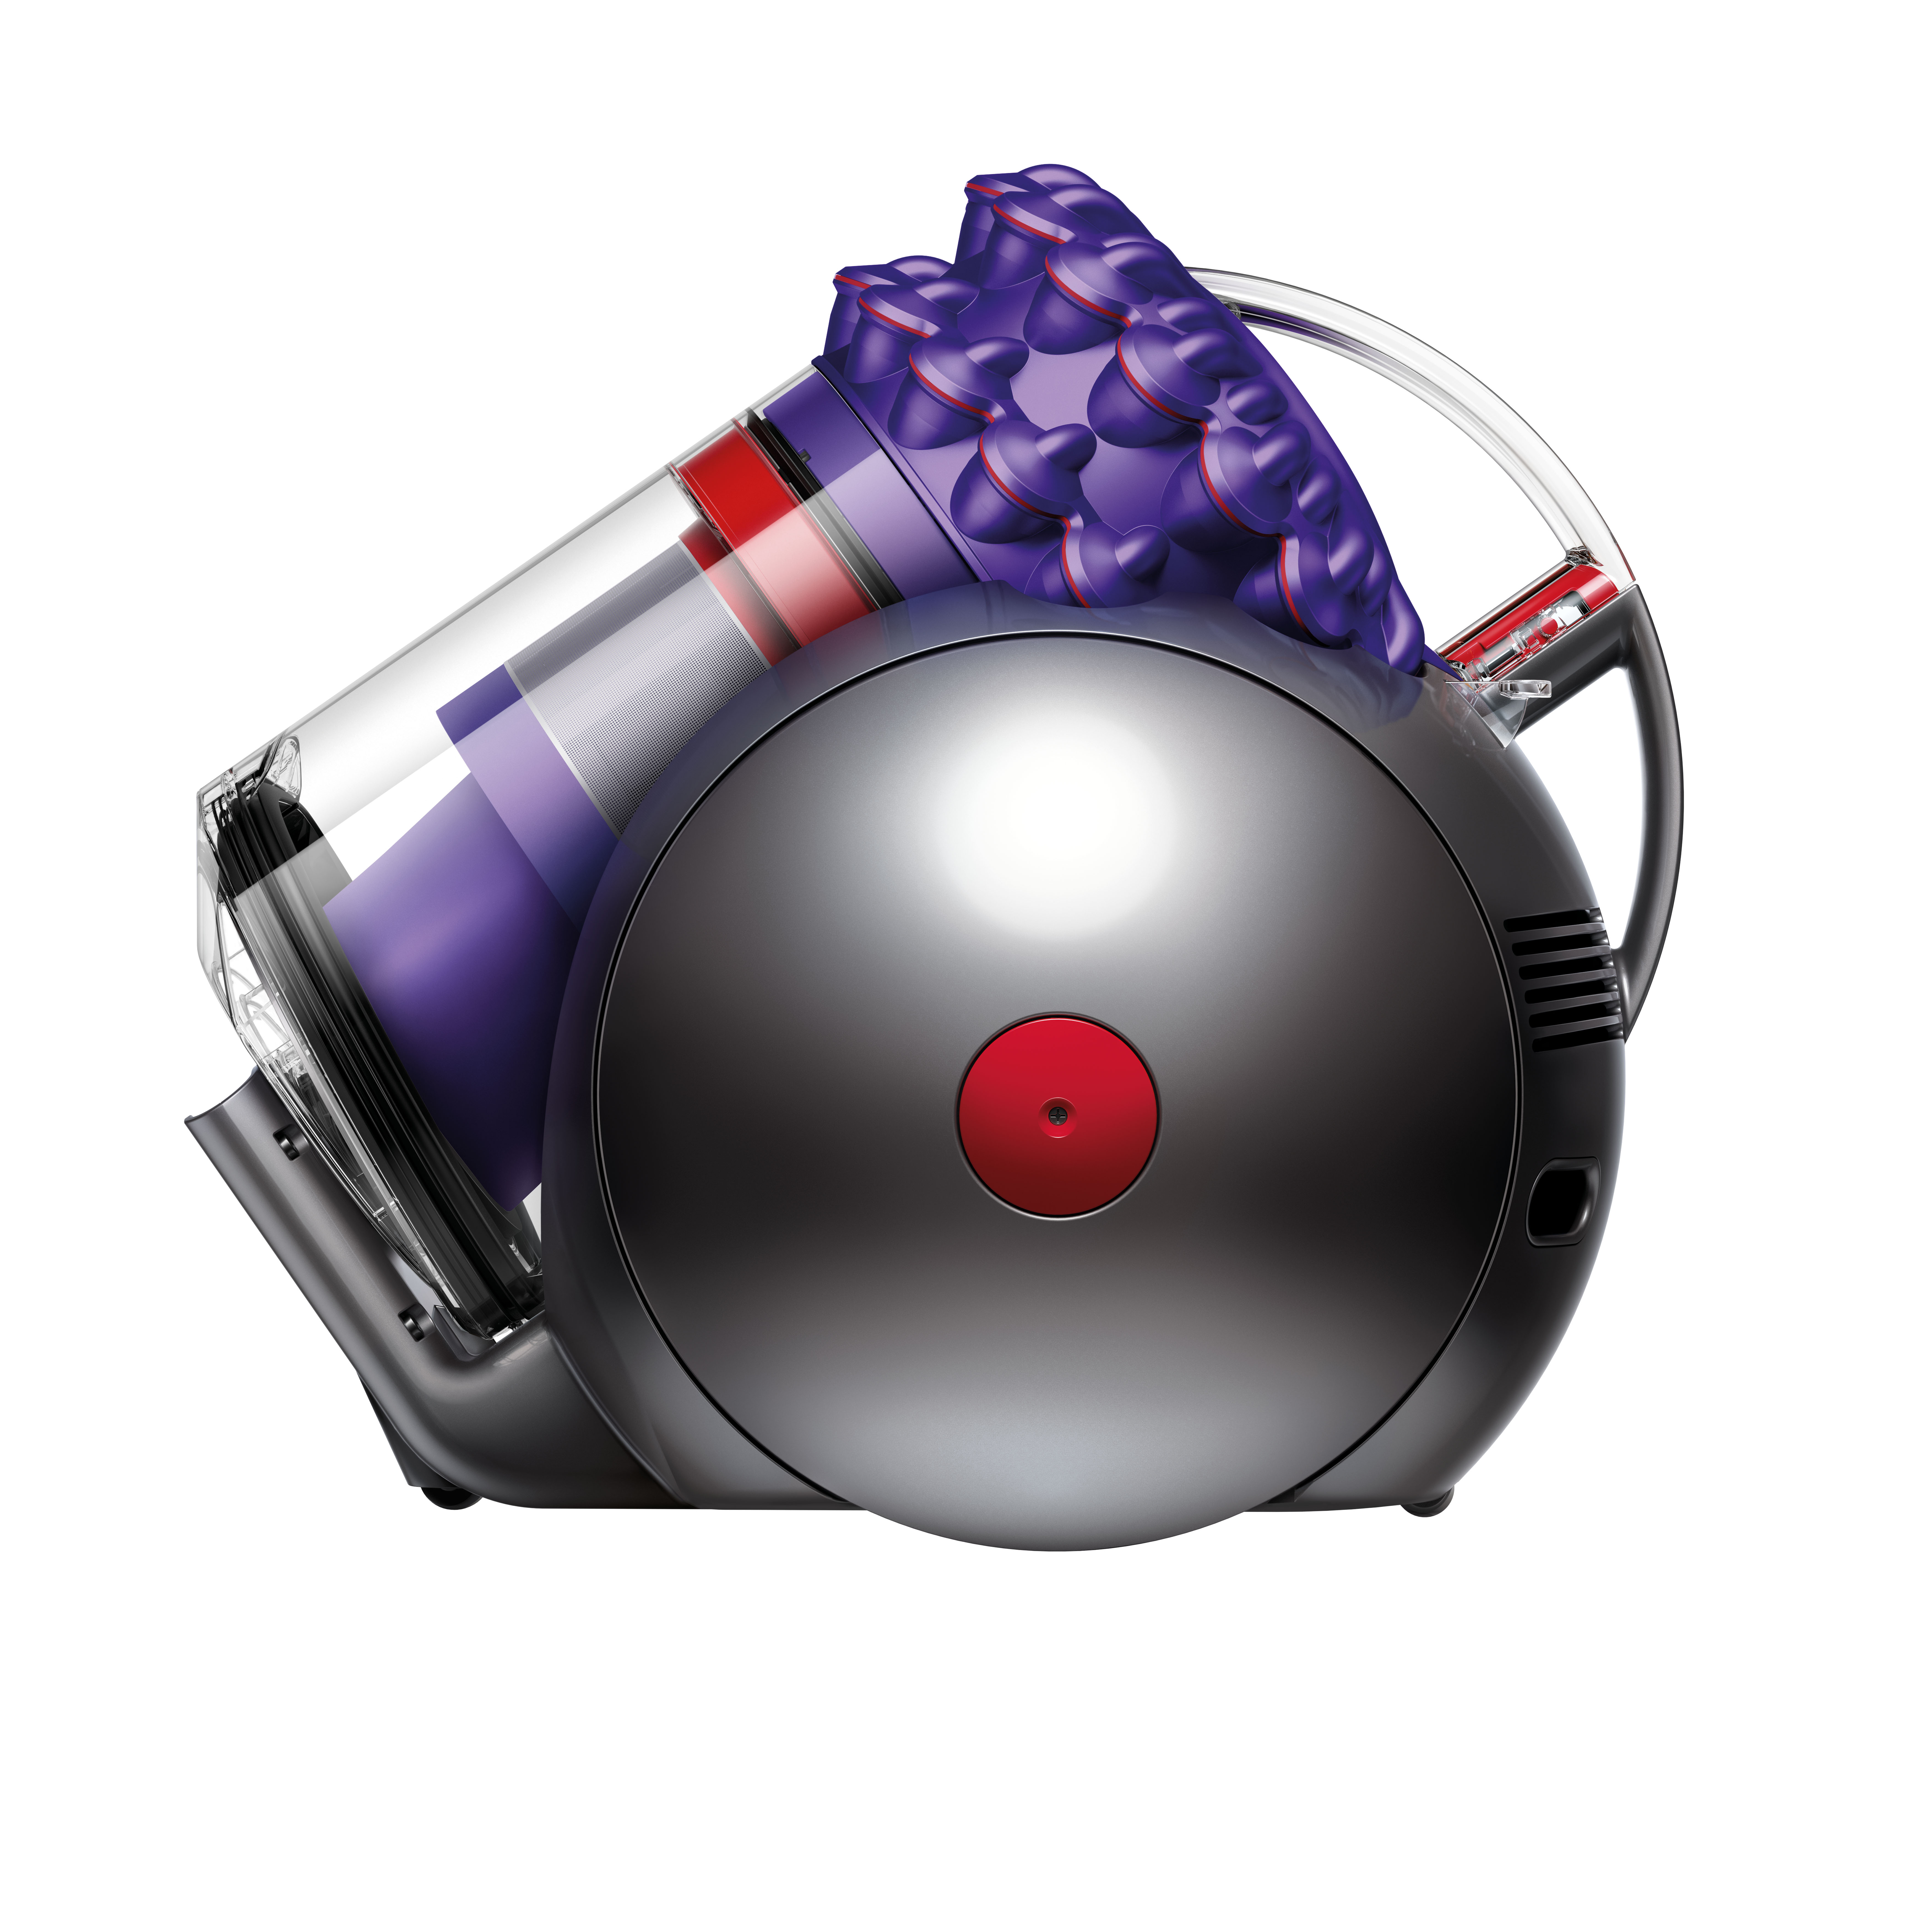 dyson cinetic big ball animal vacuum new 5025155023990 ebay. Black Bedroom Furniture Sets. Home Design Ideas